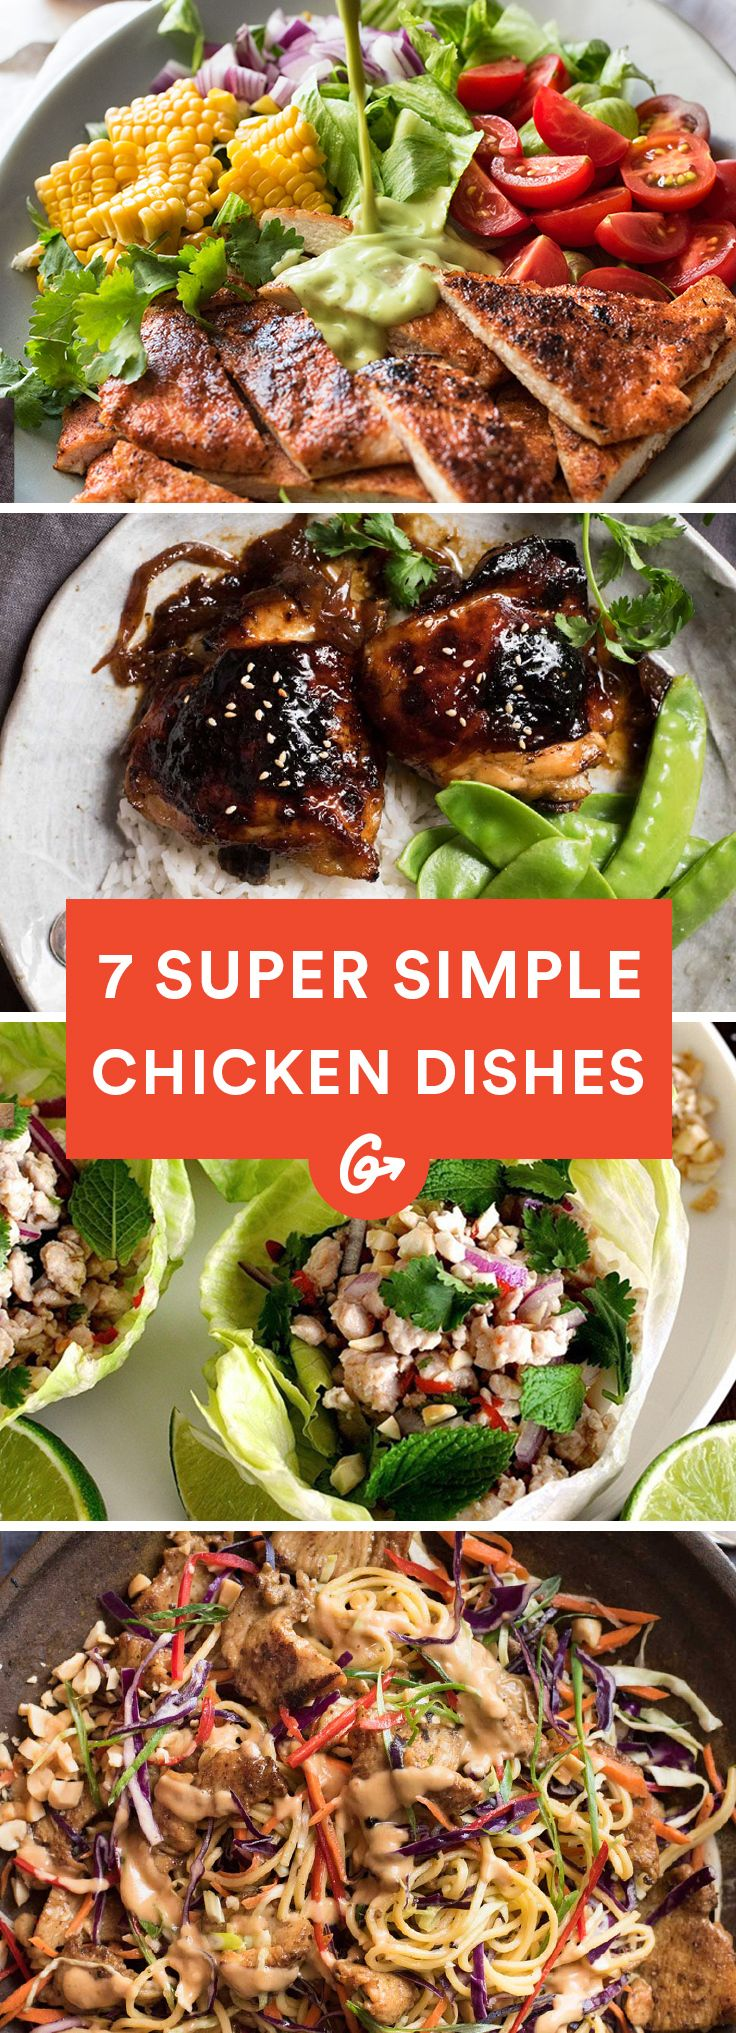 Chicken is a staple of any healthy diet, but it can get bland and boring fast. Try these... #healthy #chicken #recipes http://greatist.com/eat/easy-chicken-recipes-that-are-tasty-af